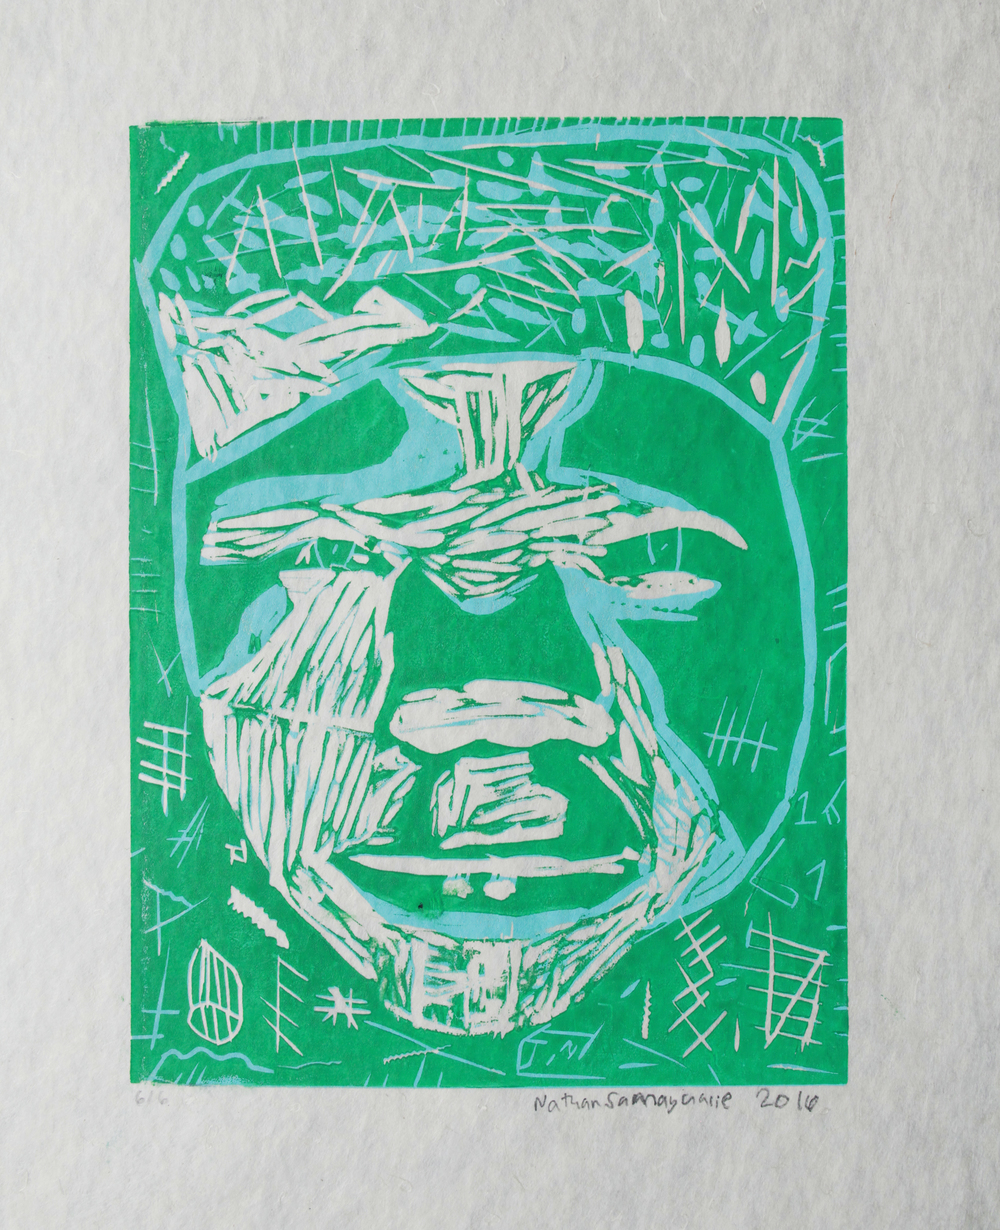 Uvanga: Self-Portrait   Nathan Samayualie  Two-Layer Linocut Print on Washi  15.5 x 21.5""